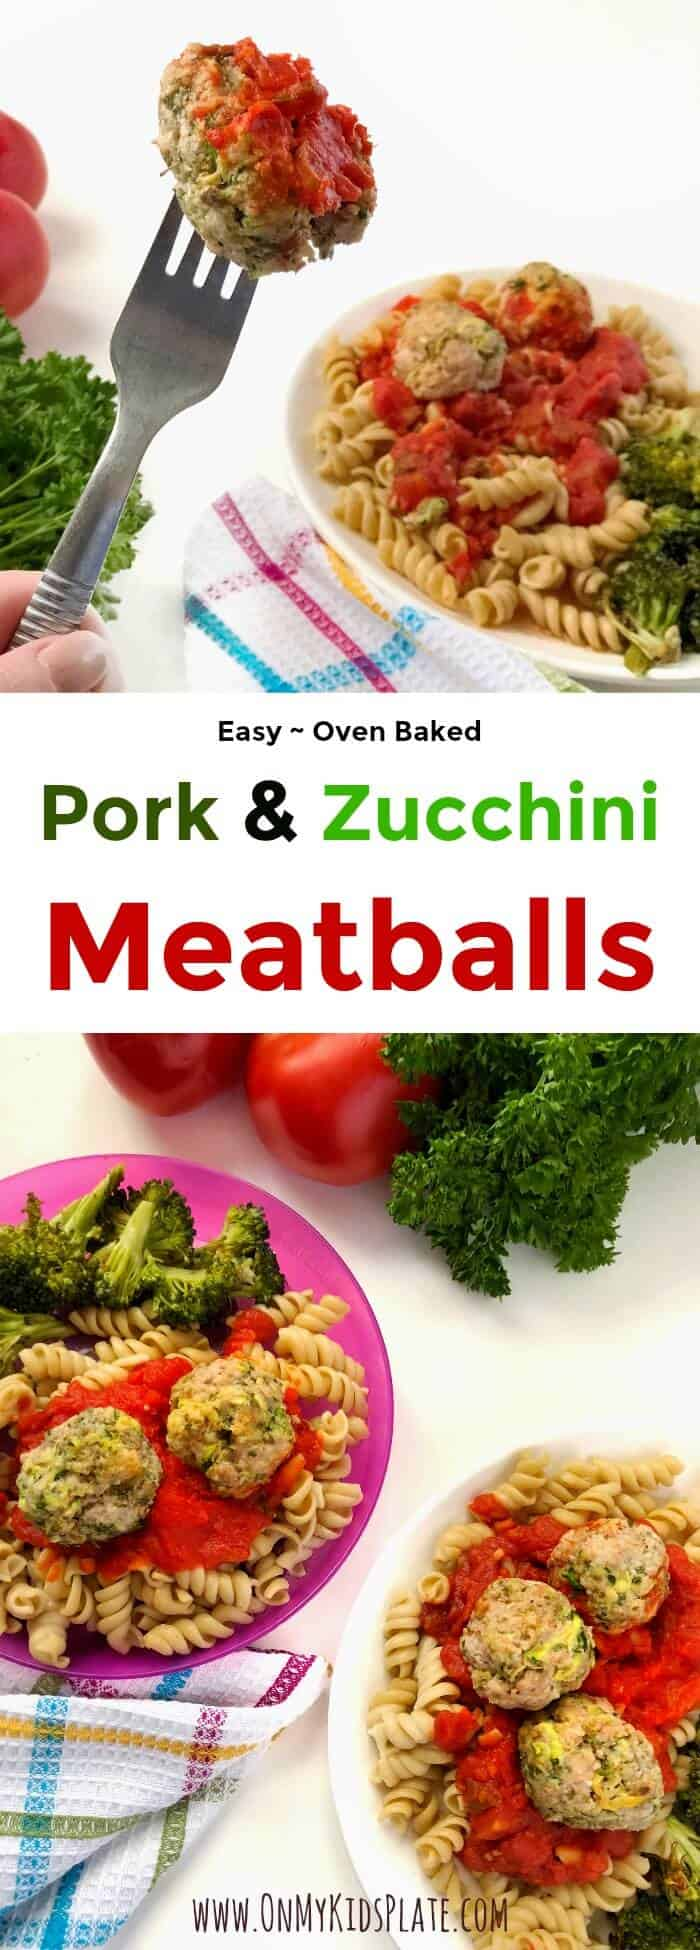 """At the top of this image we see a oven baked homemade pork meatball on the end of a fork with a plate of twirly pasta and sace in the background. Fresh tomatos, parsley and a bright and colorful kitchen towel are also in the background. In the middle of the image a title reads """"Easy oven baked pork and zucchini meatballs."""" At the bottom is a second picture showing both a white plate and a purple kid's plate full of homemade meatballs, sprial pasta, sauce and roasted broccoli. We also see tomatos and parsely sitting in the background on the counter."""